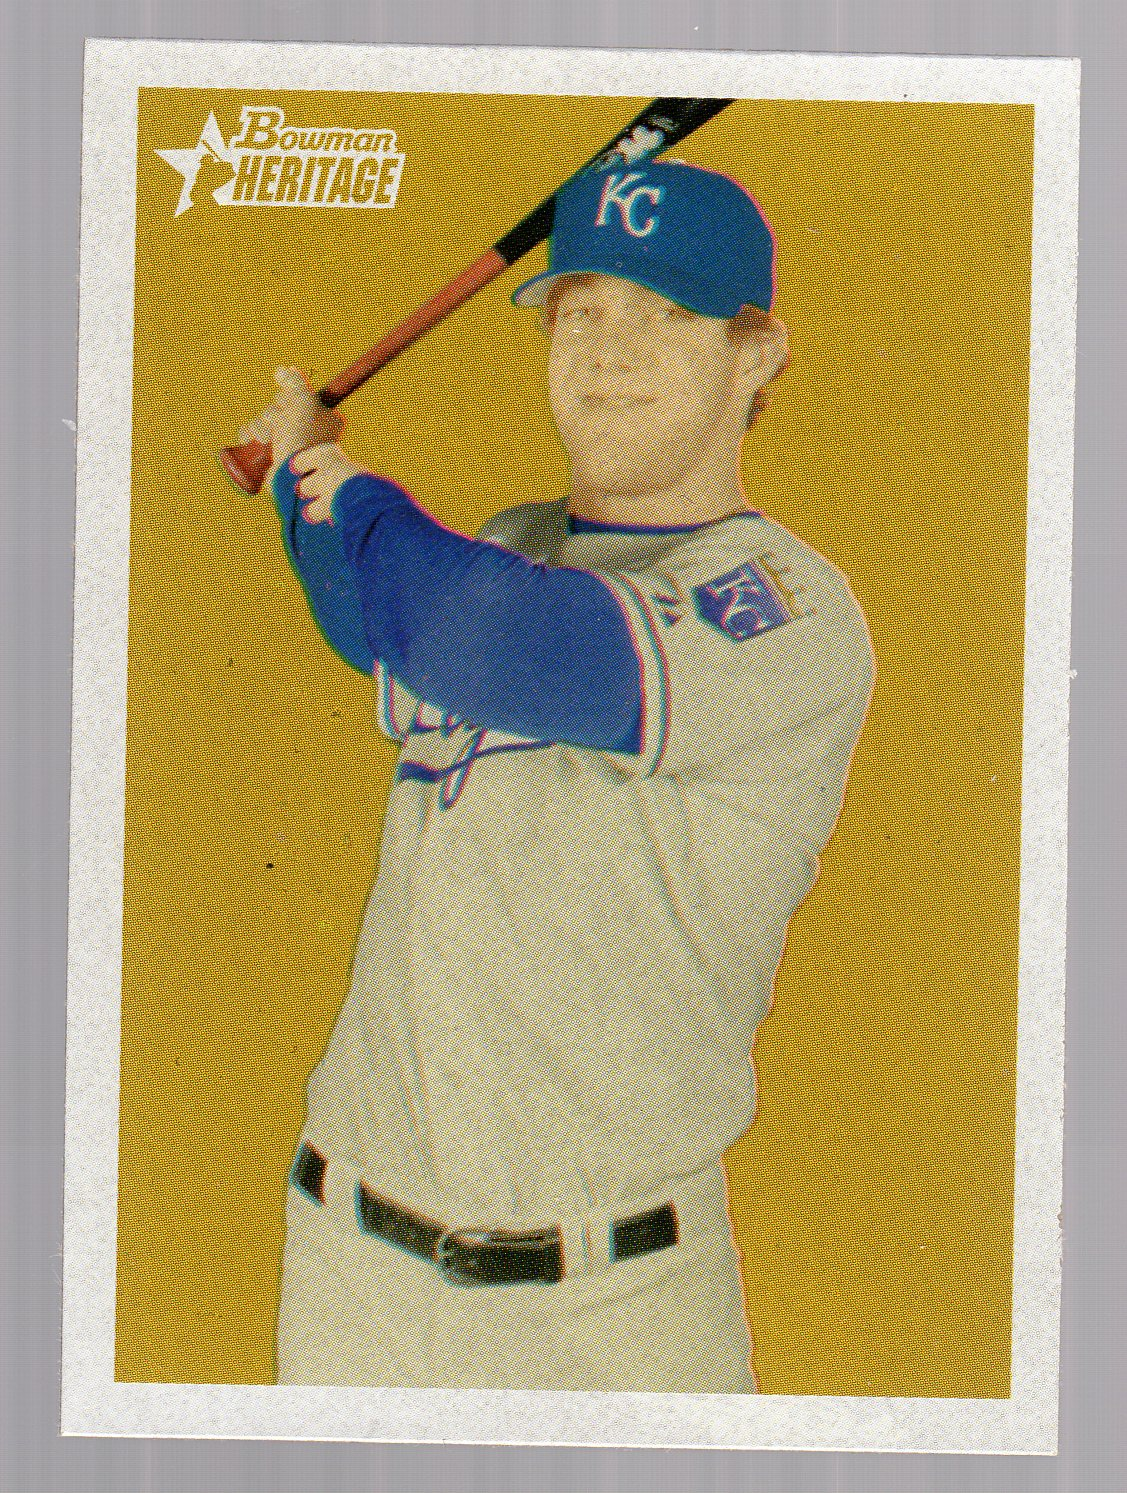 2006 Bowman Heritage Prospects #6 Alex Gordon